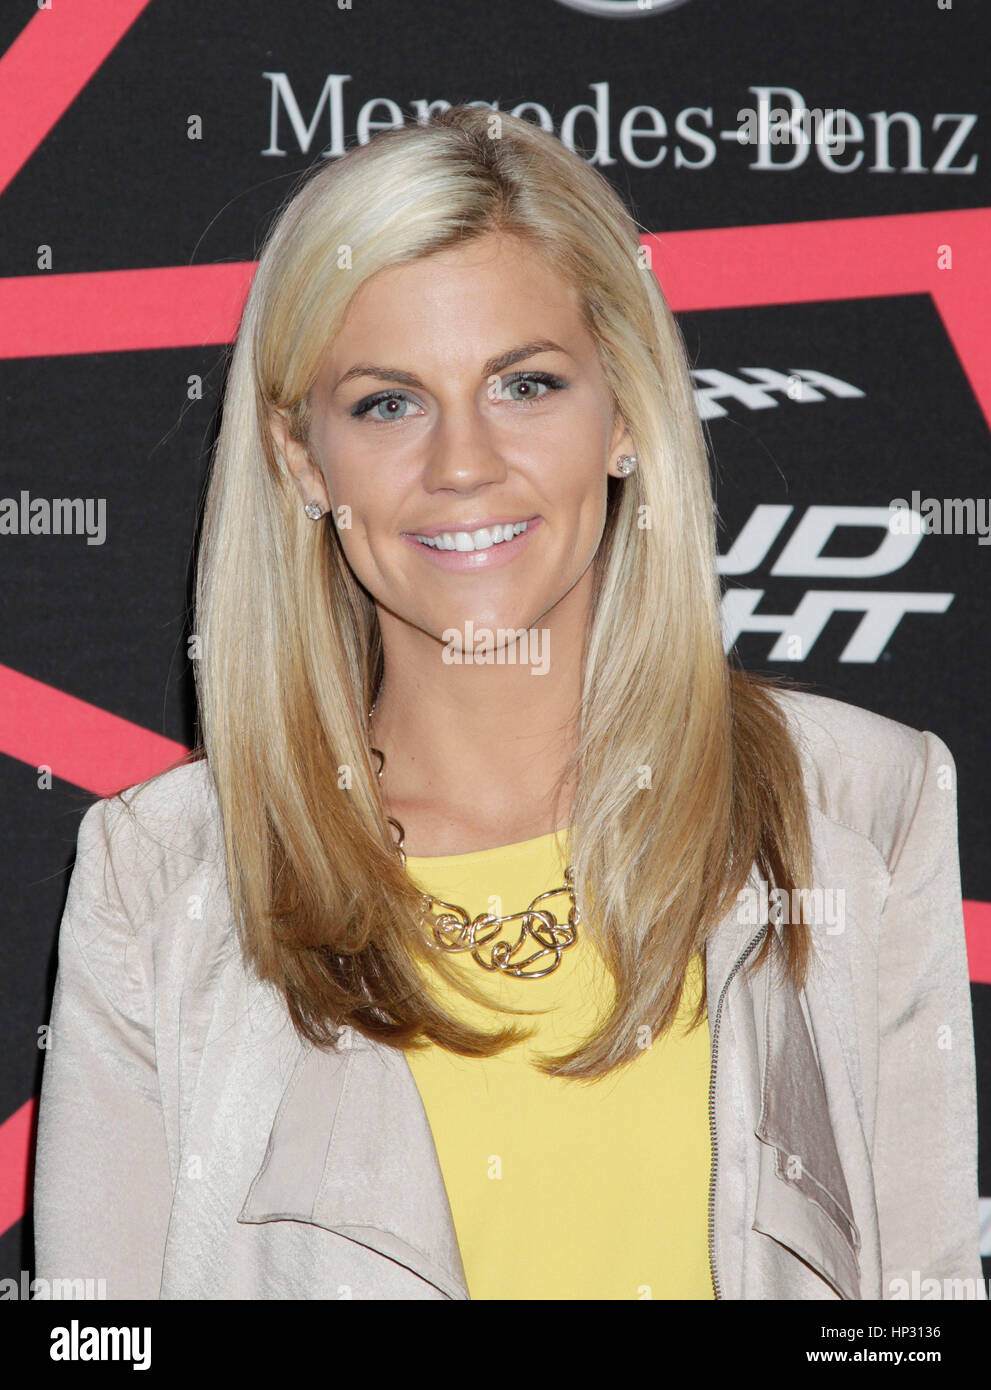 Samantha Ponder Stock Photos Samantha Ponder Stock Images Alamy